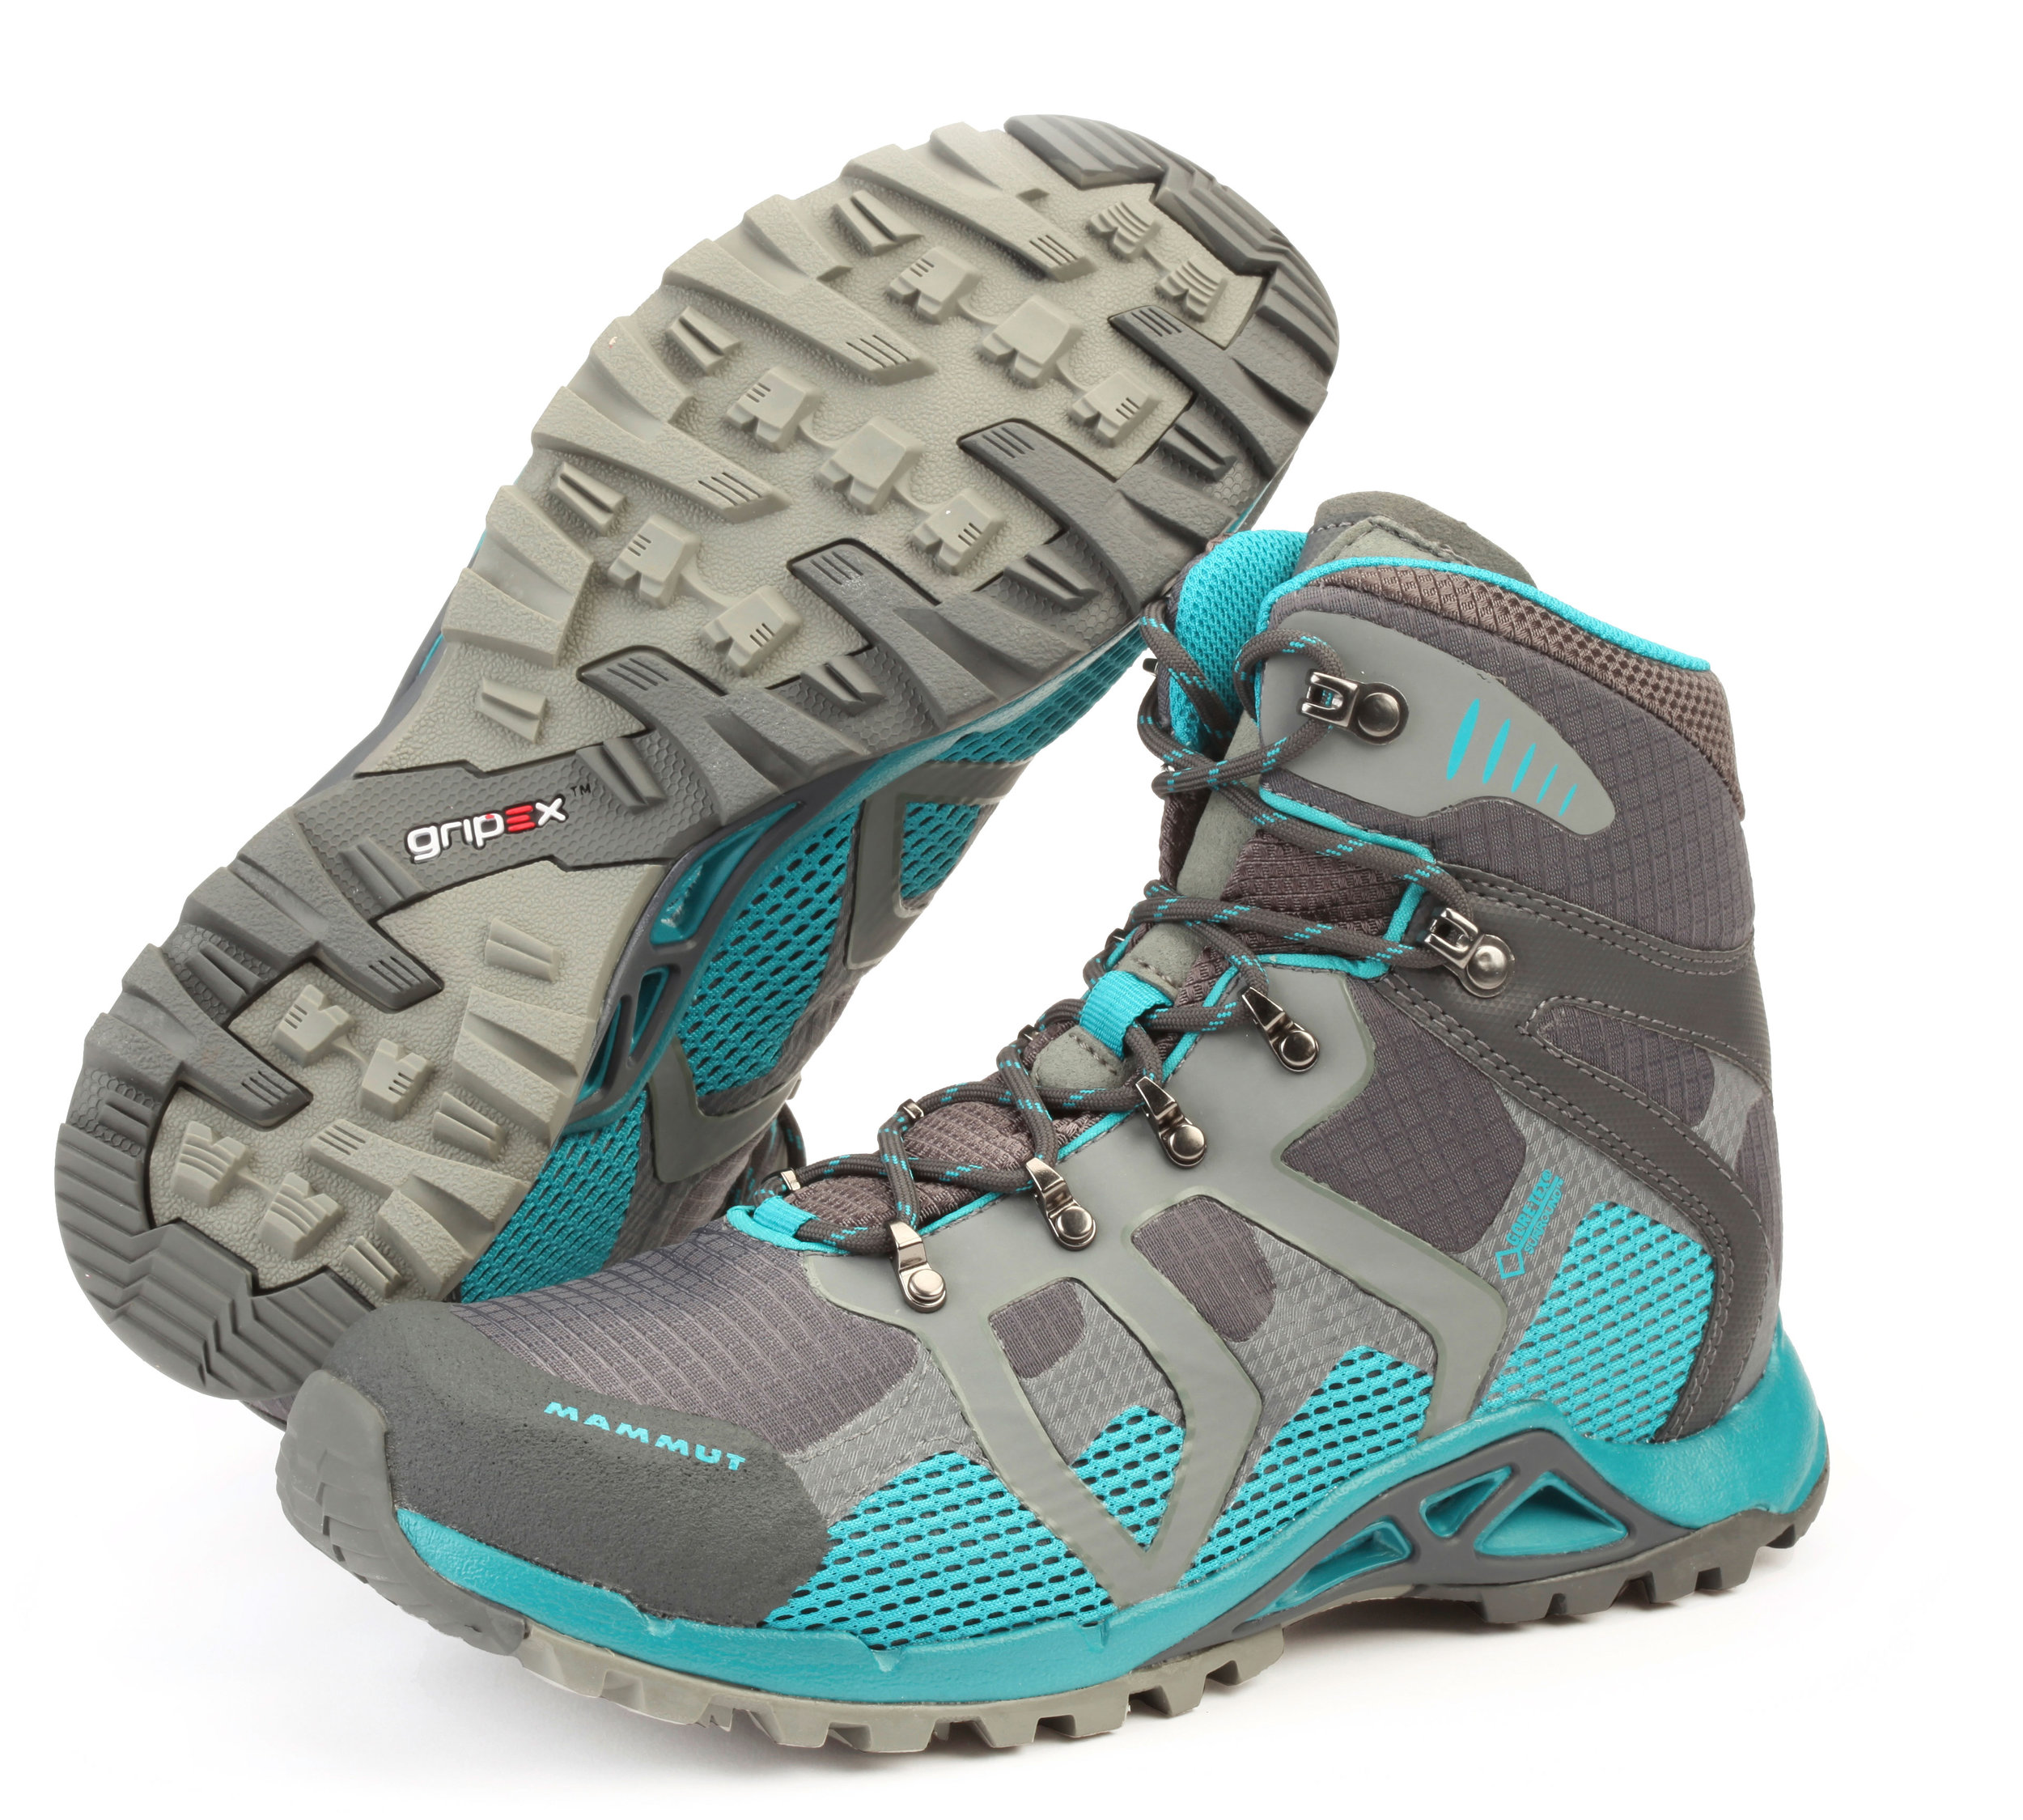 378fbc55409 MAMMUT Comfort High GTX Walking Boots — Live for the Outdoors